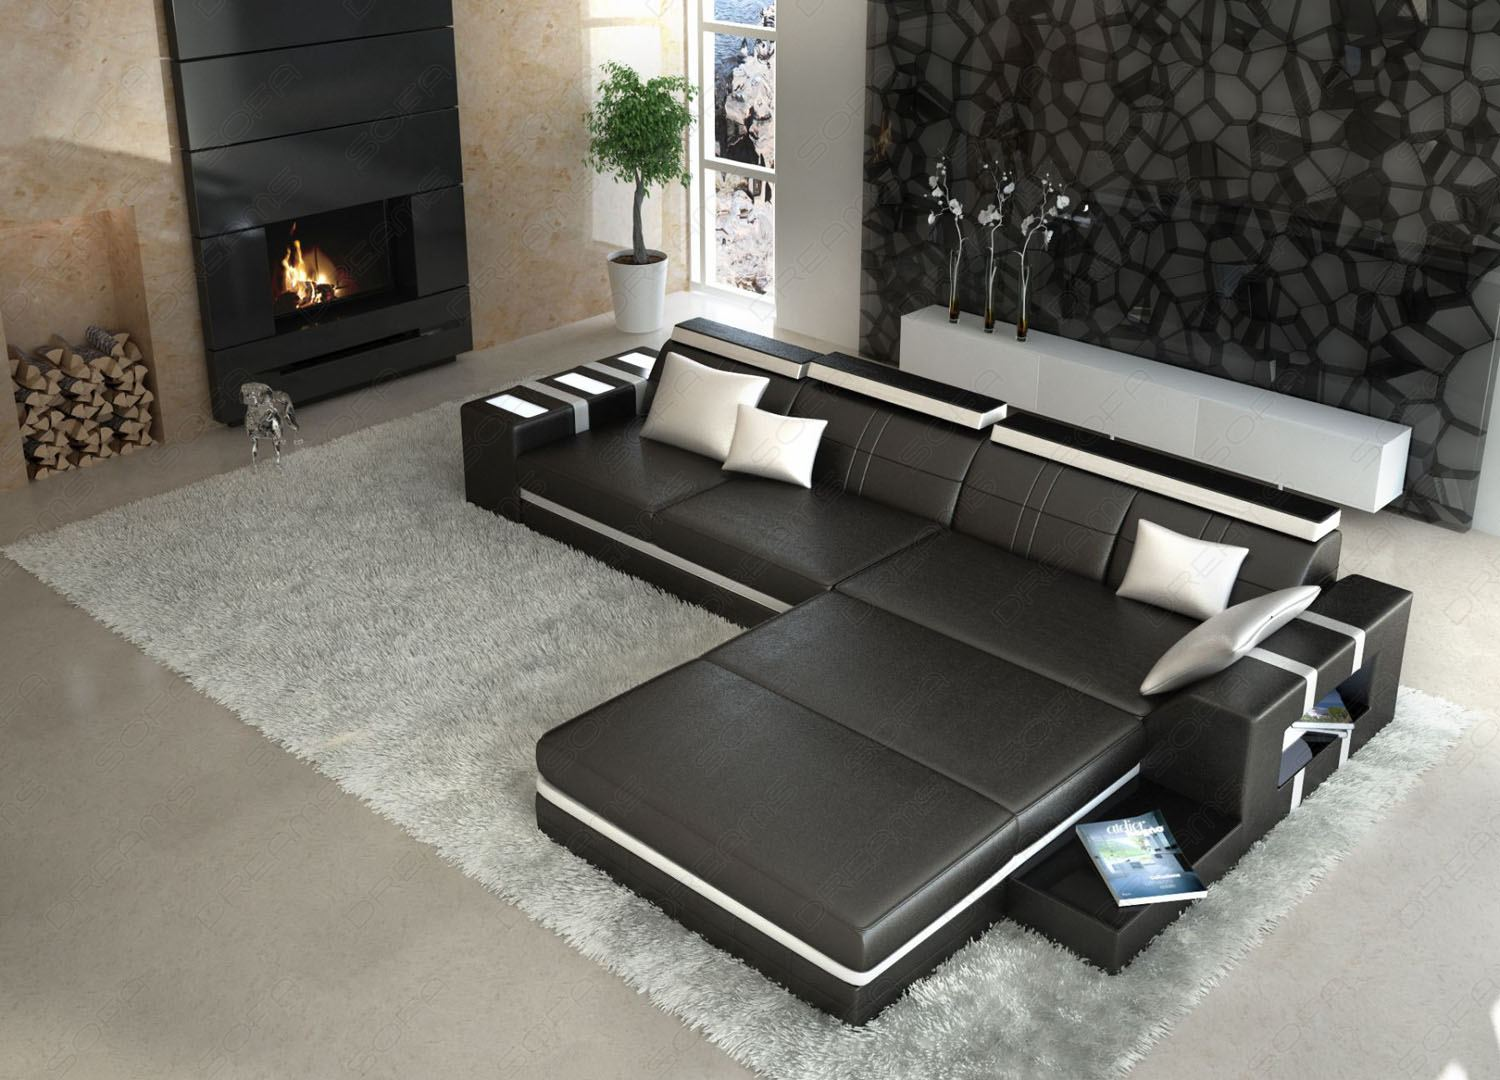 Sofaecke Excellent Full Size Of Ideen Big Sofa Ecke Besten Sofas Otto Ledercouch Amazing Great Amazing Kchenzeile Kleine